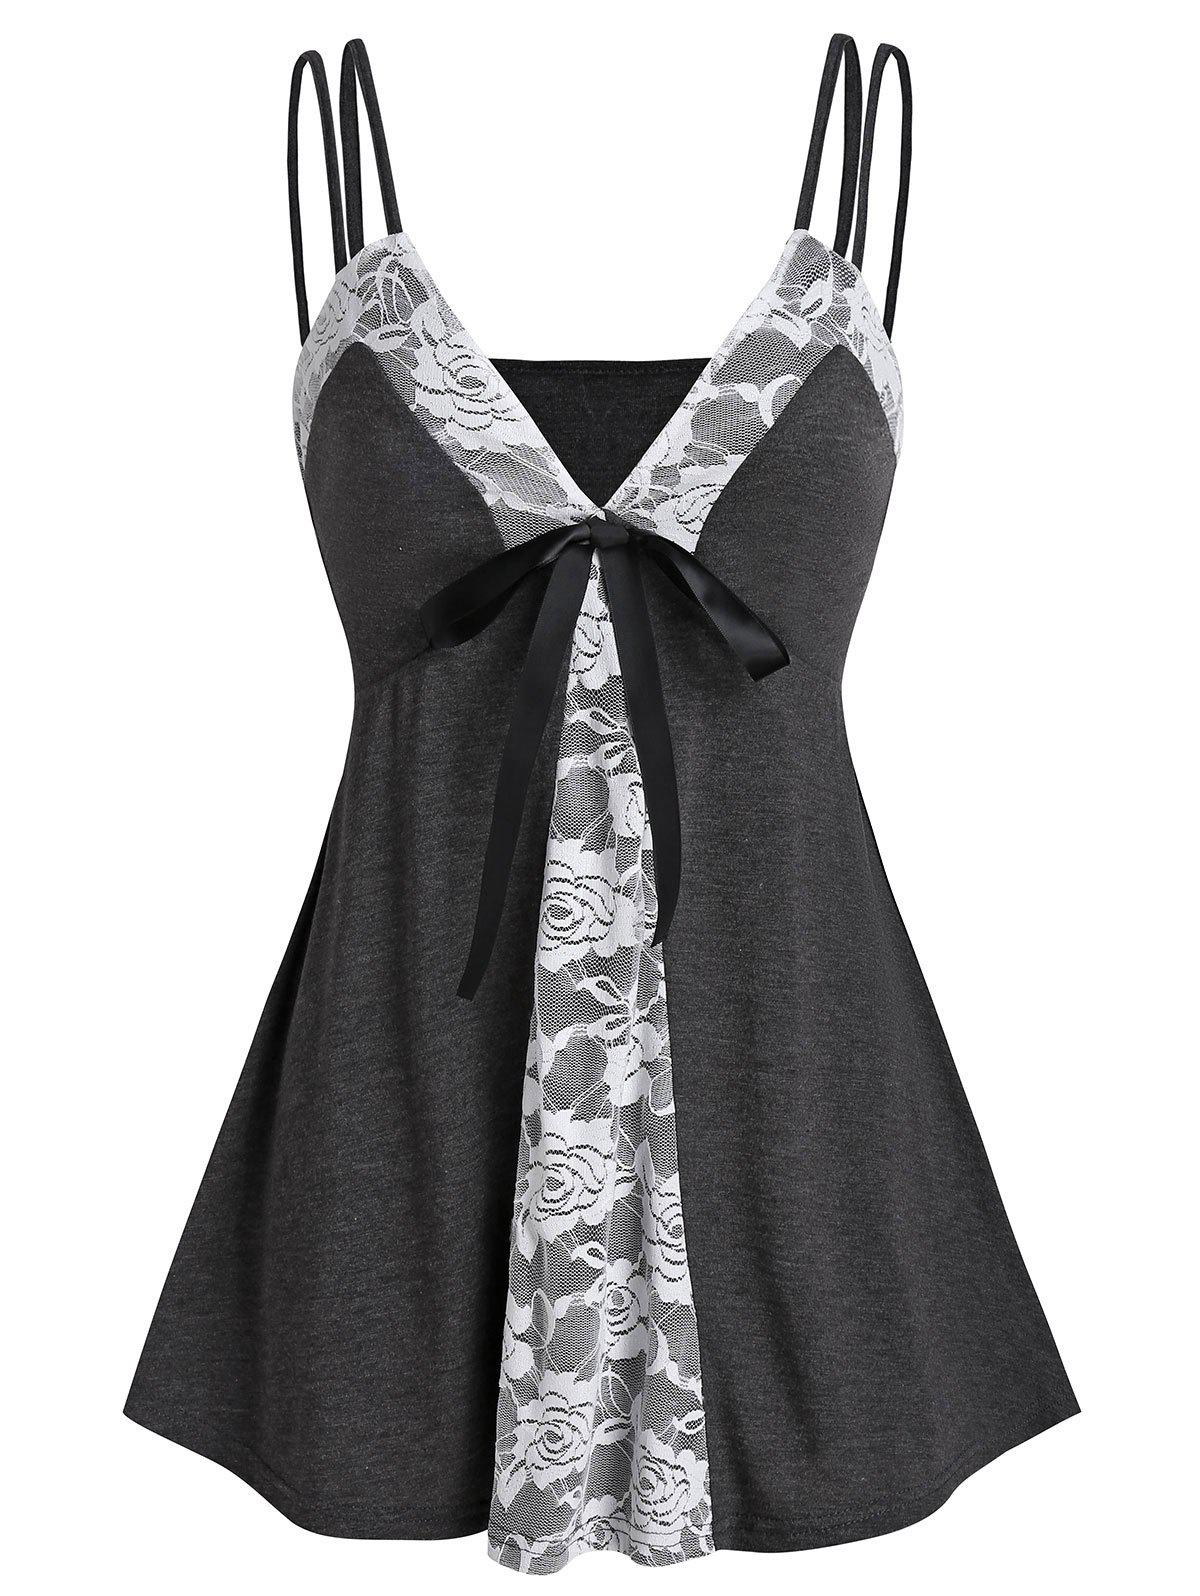 Shops Lace Insert Bowknot Heathered Cami Top